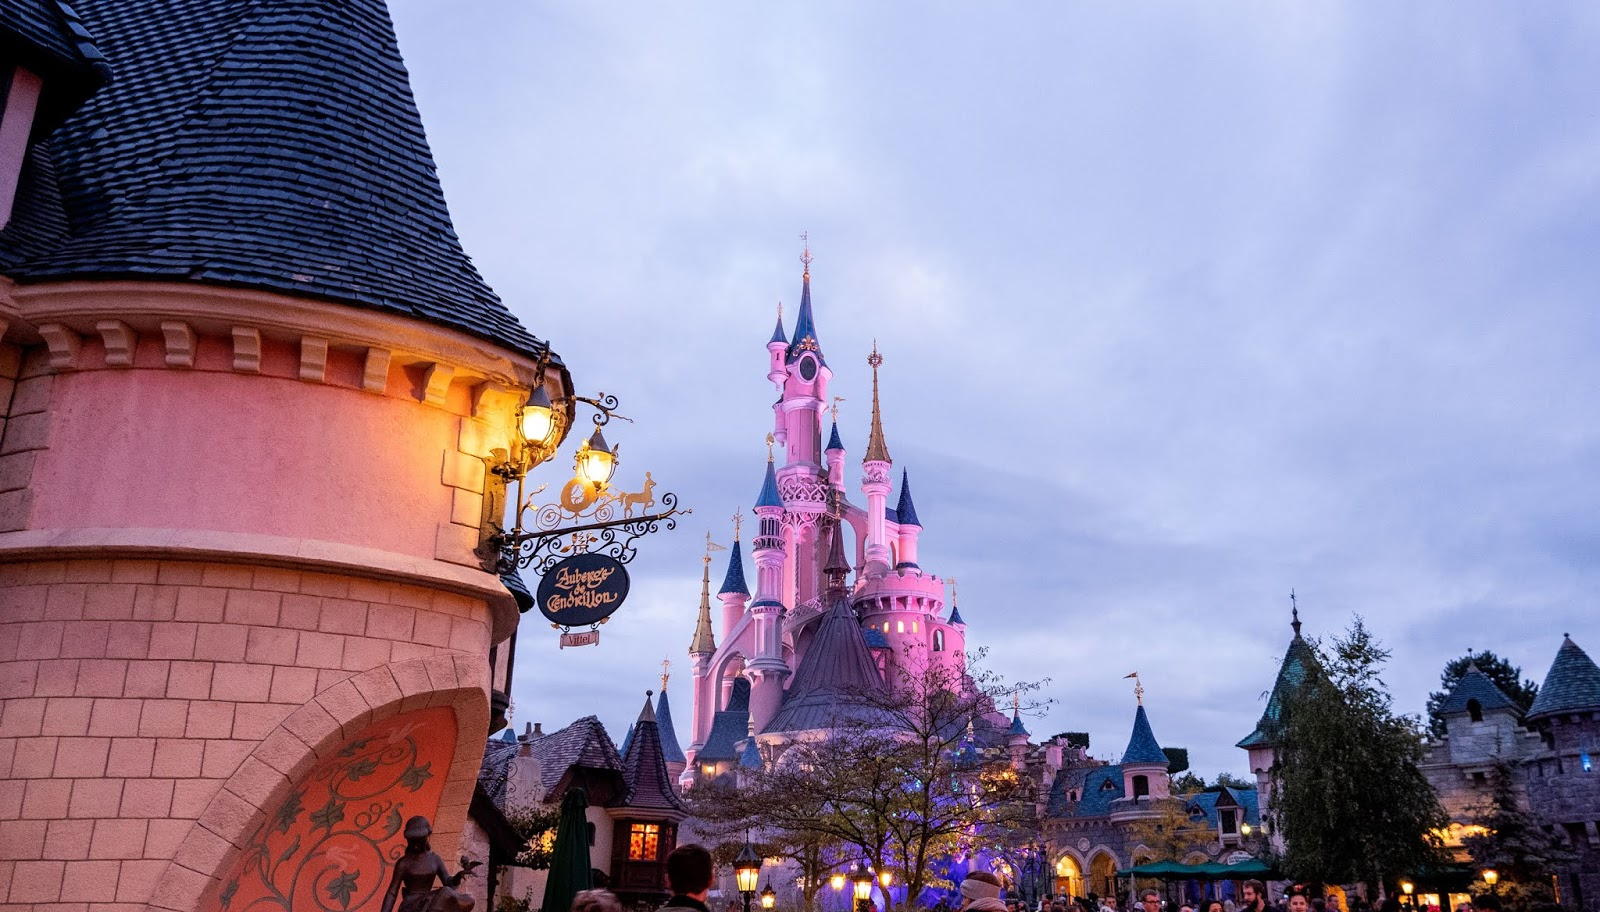 Fantasyland at Disneyland Paris